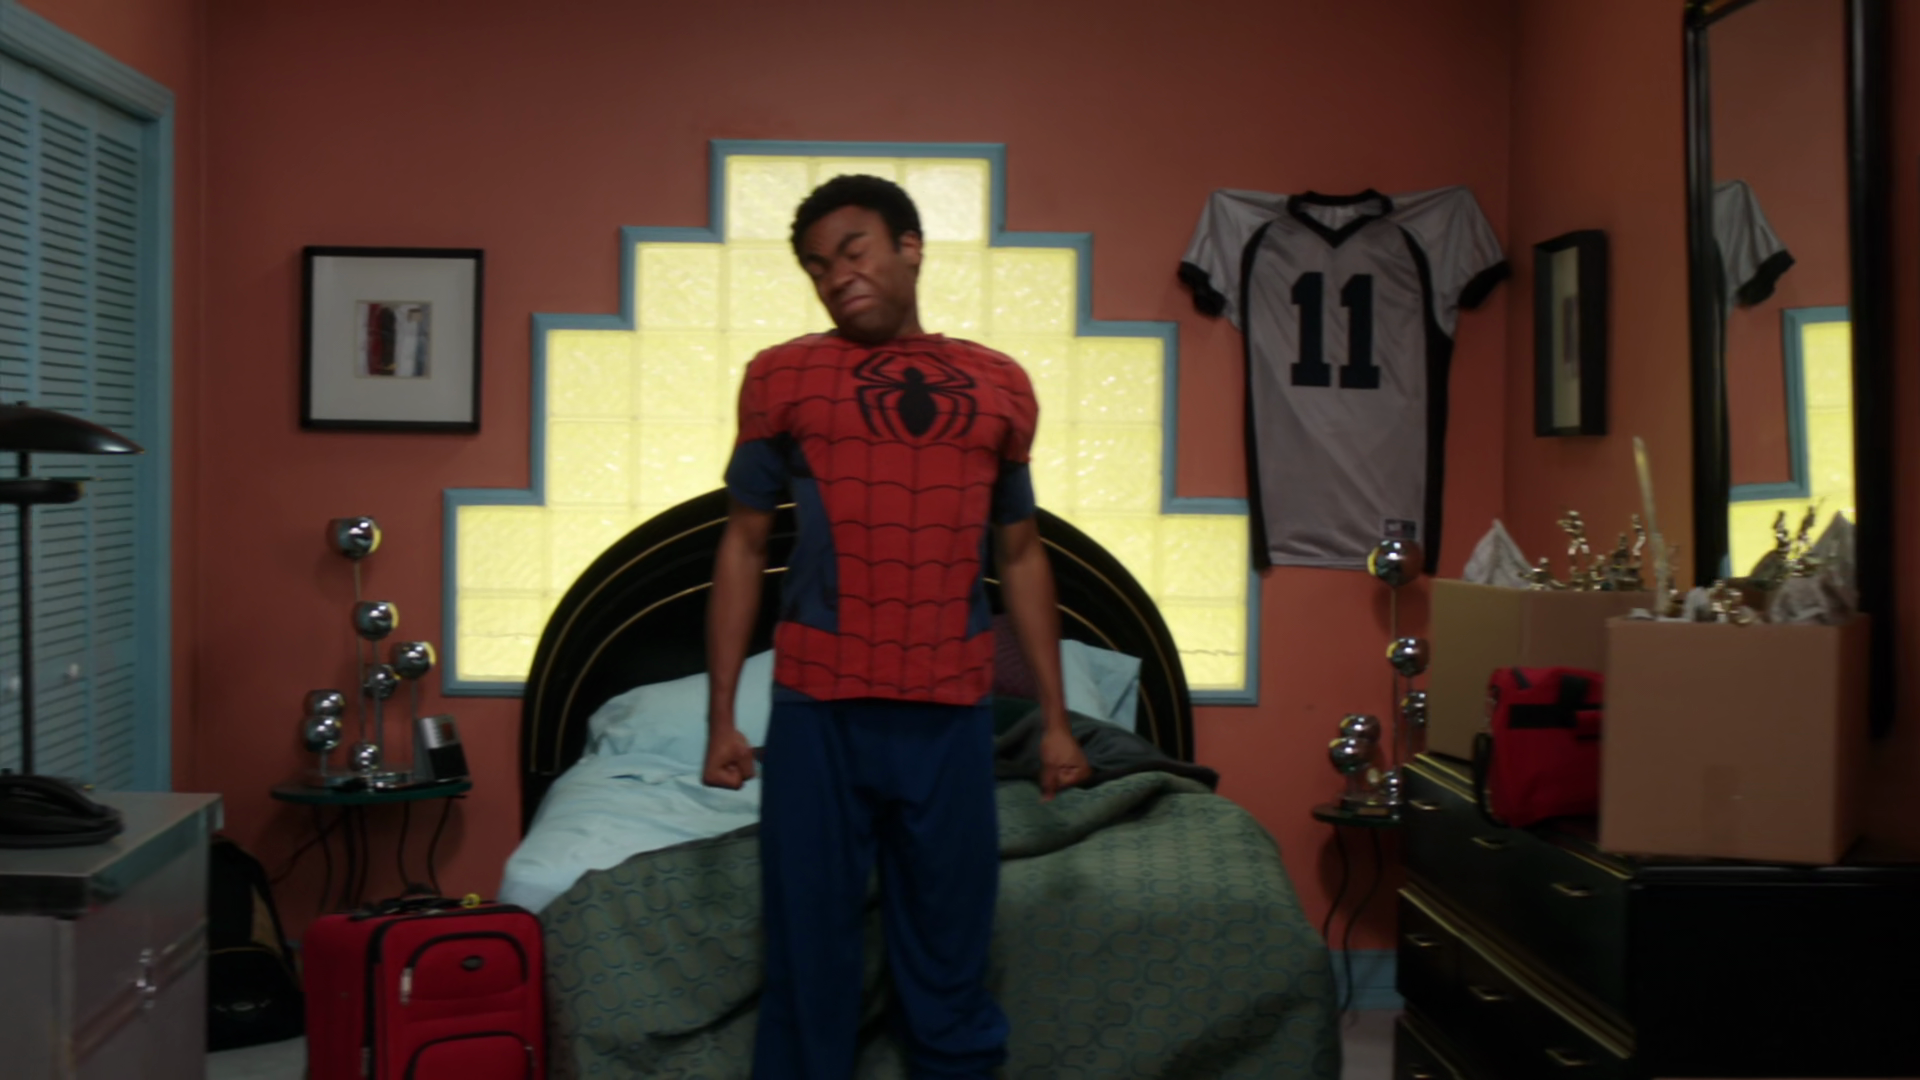 File:A101 Troy's room.png